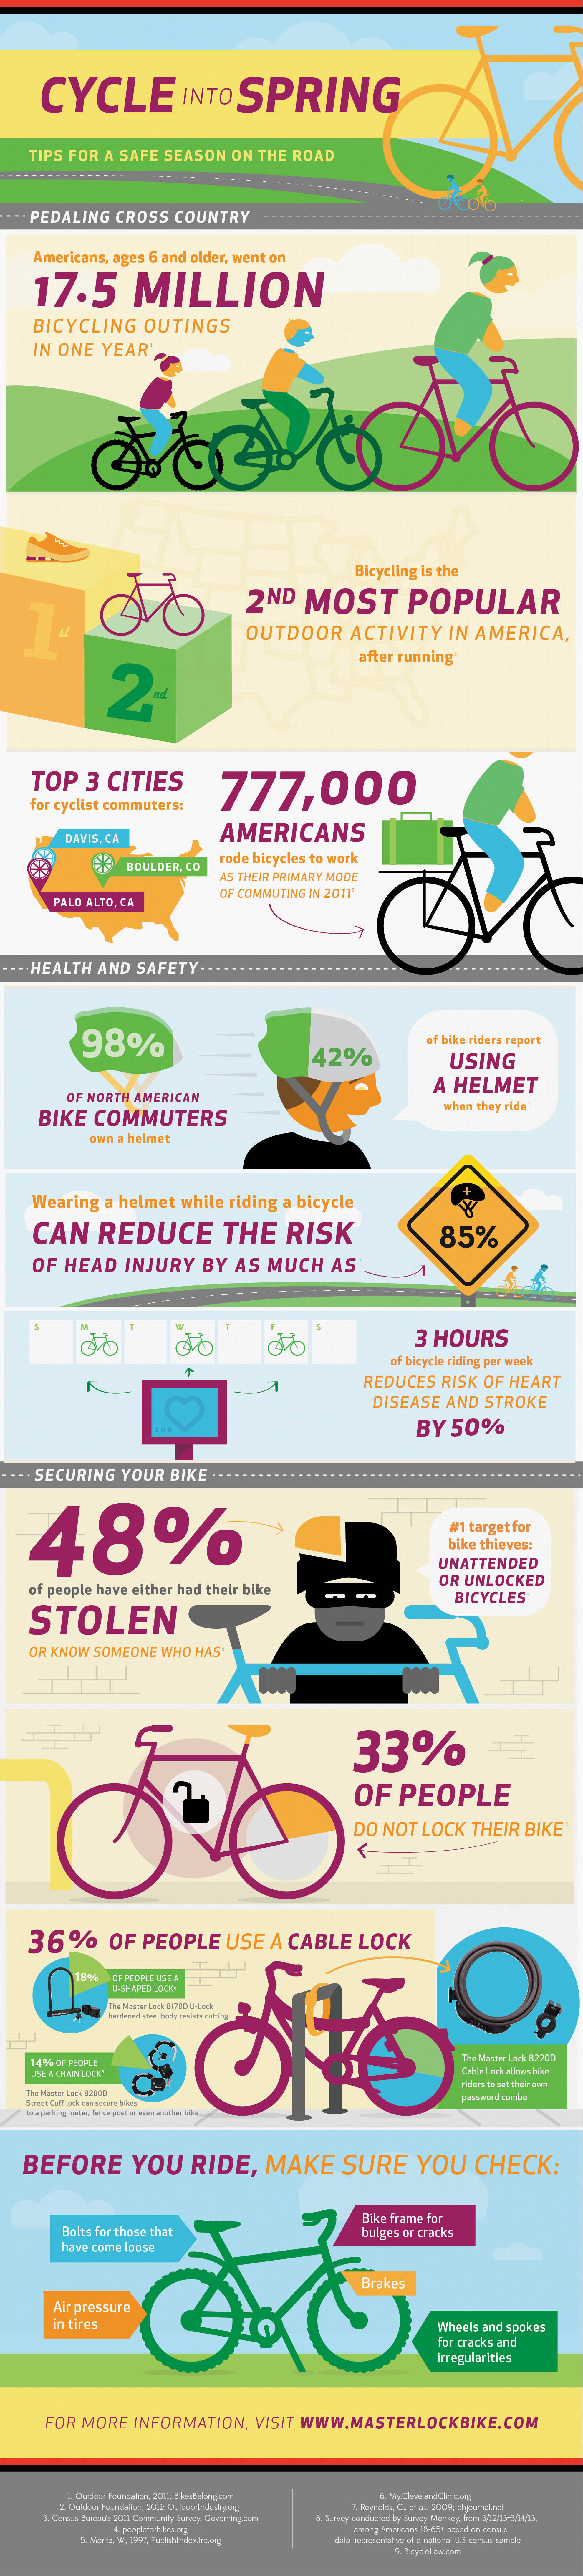 JSH&A.Master Lock Bike Safety Infographic FINAL